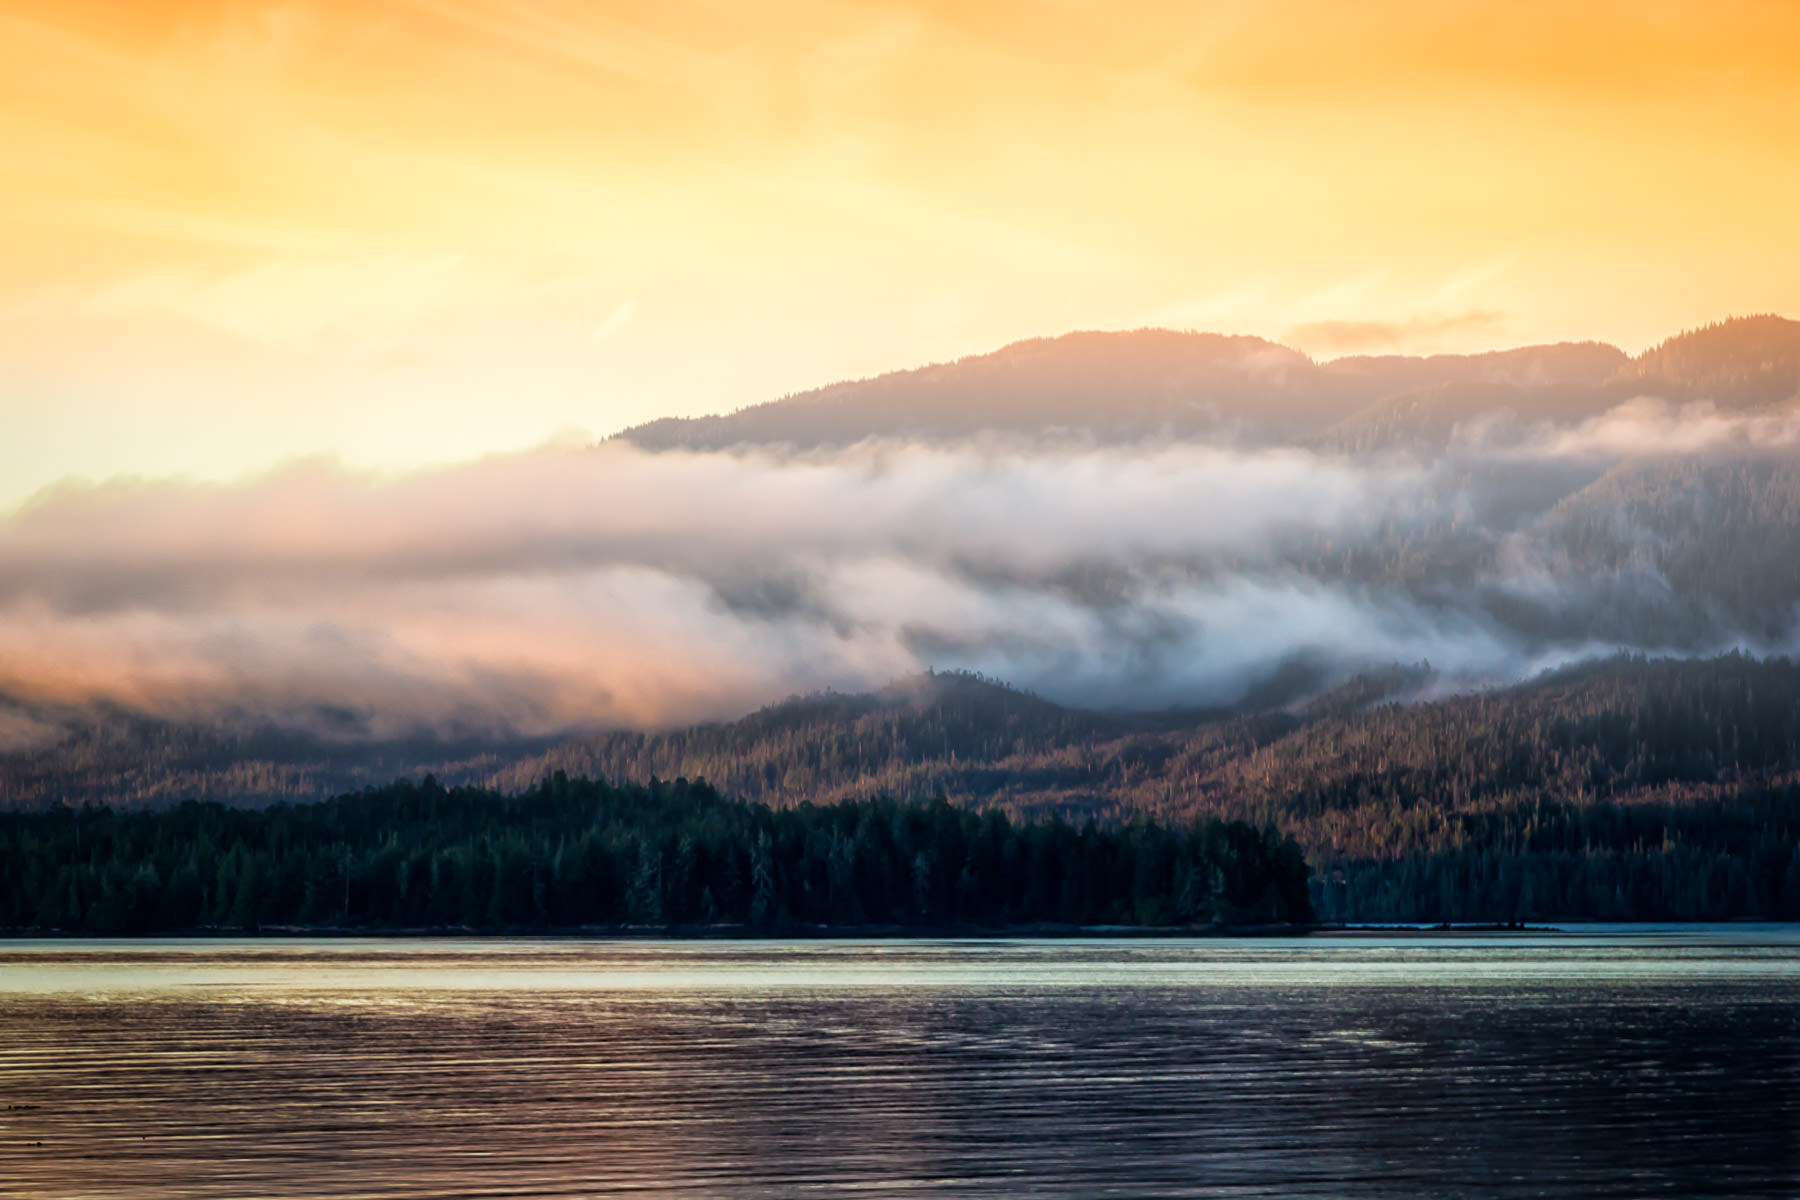 Morning fog envelops Gravina Island, across the Tongass Narrows from Ketchikan, Alaska,